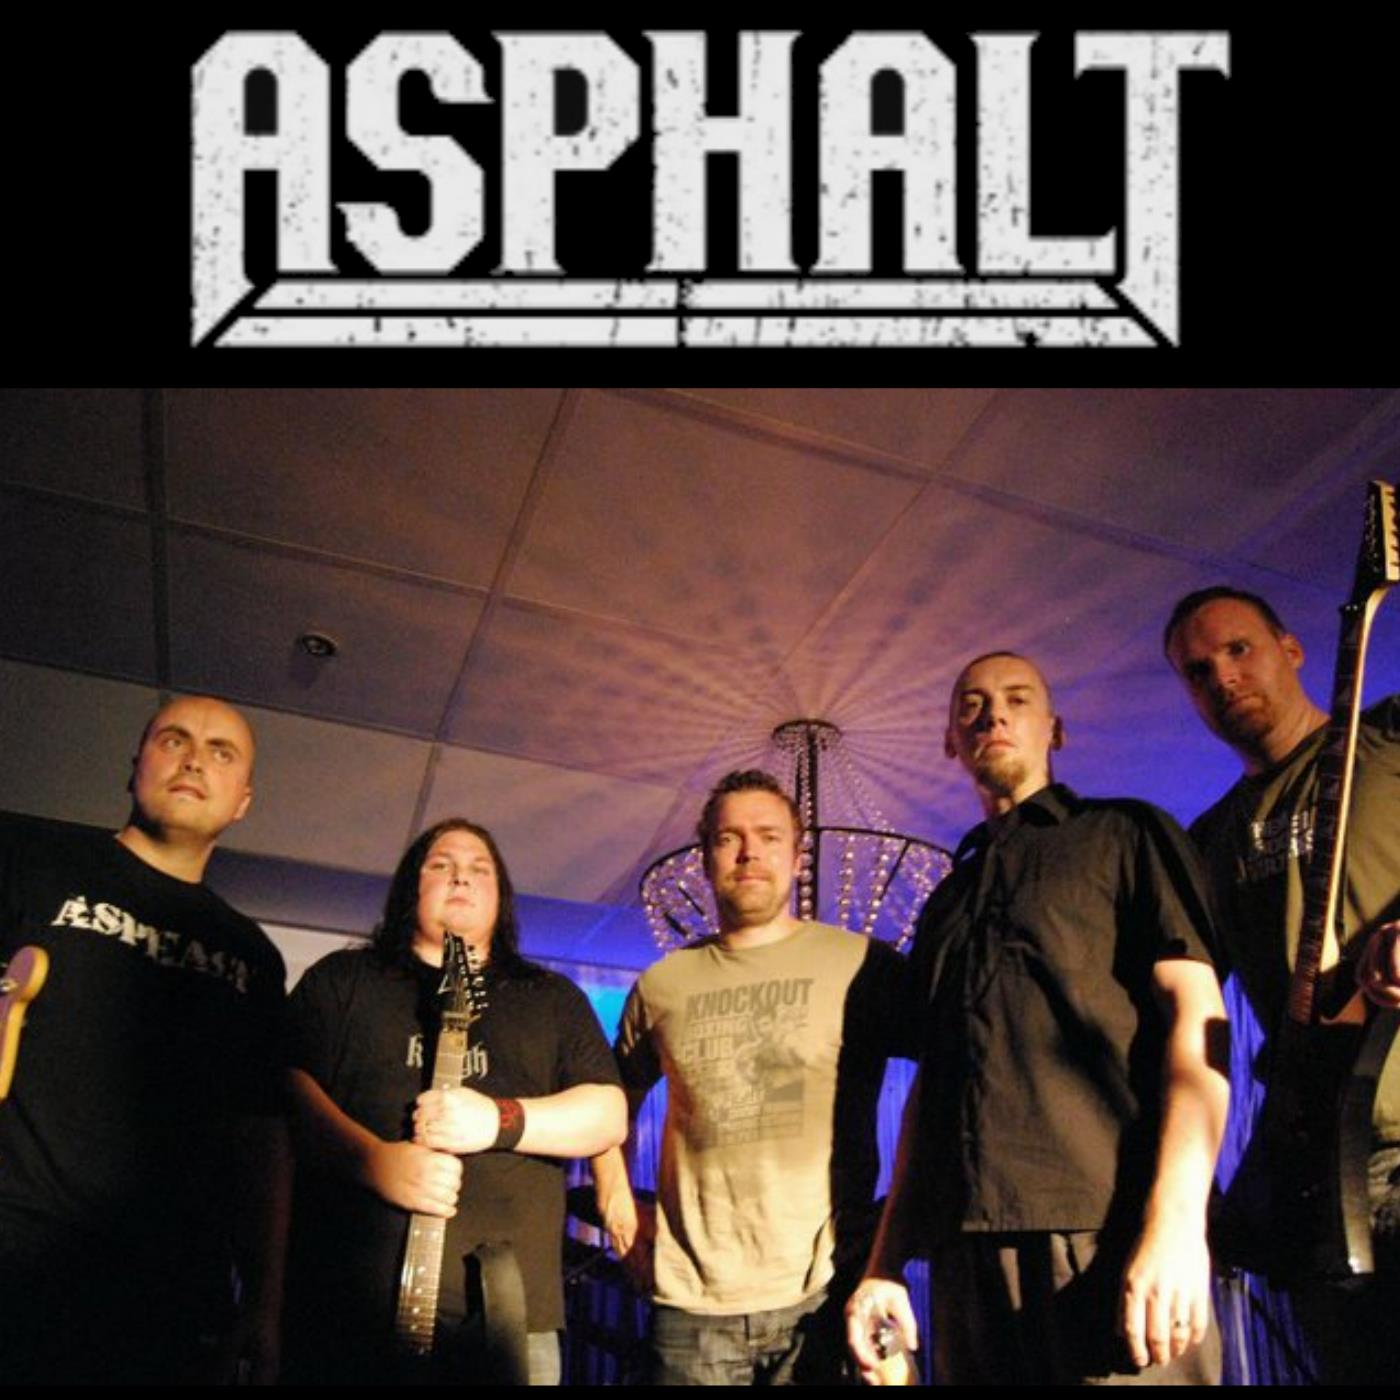 Desecration of a Decade - Best of Asphalt